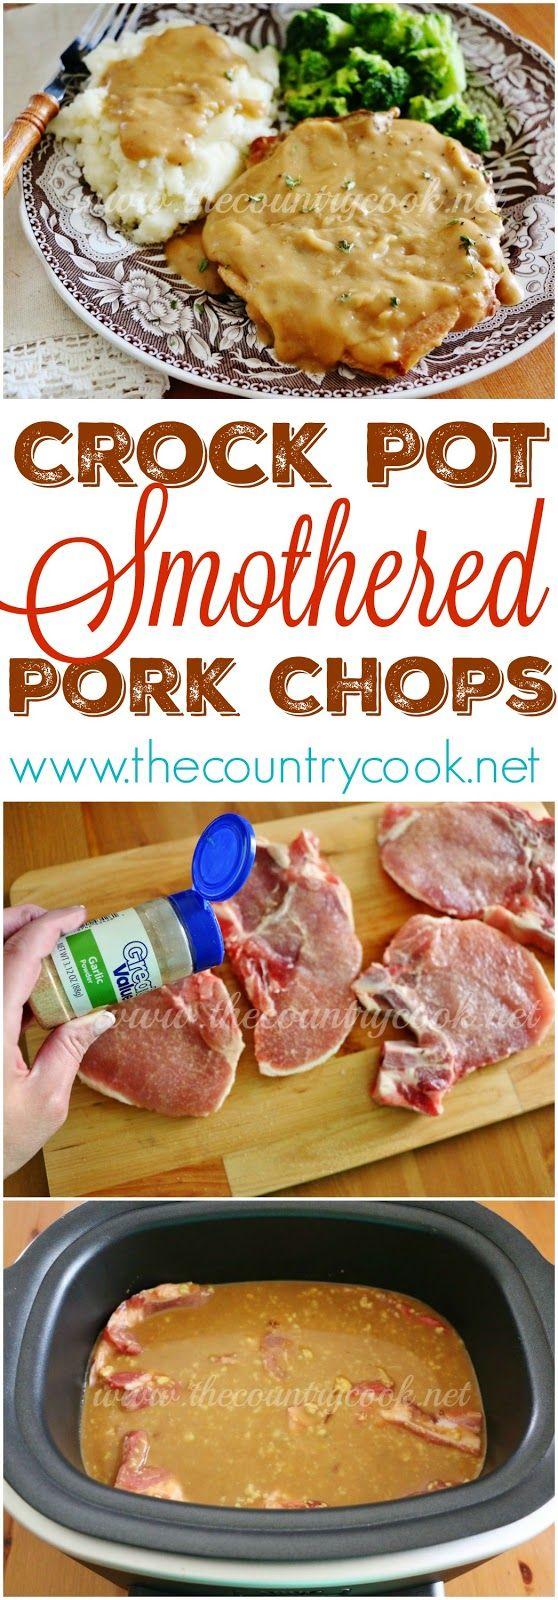 The Country Cook: Crock Pot Smothered Pork Chops#Lb3idxqo9ThiqwEo.32#Lb3idxqo9ThiqwEo.32